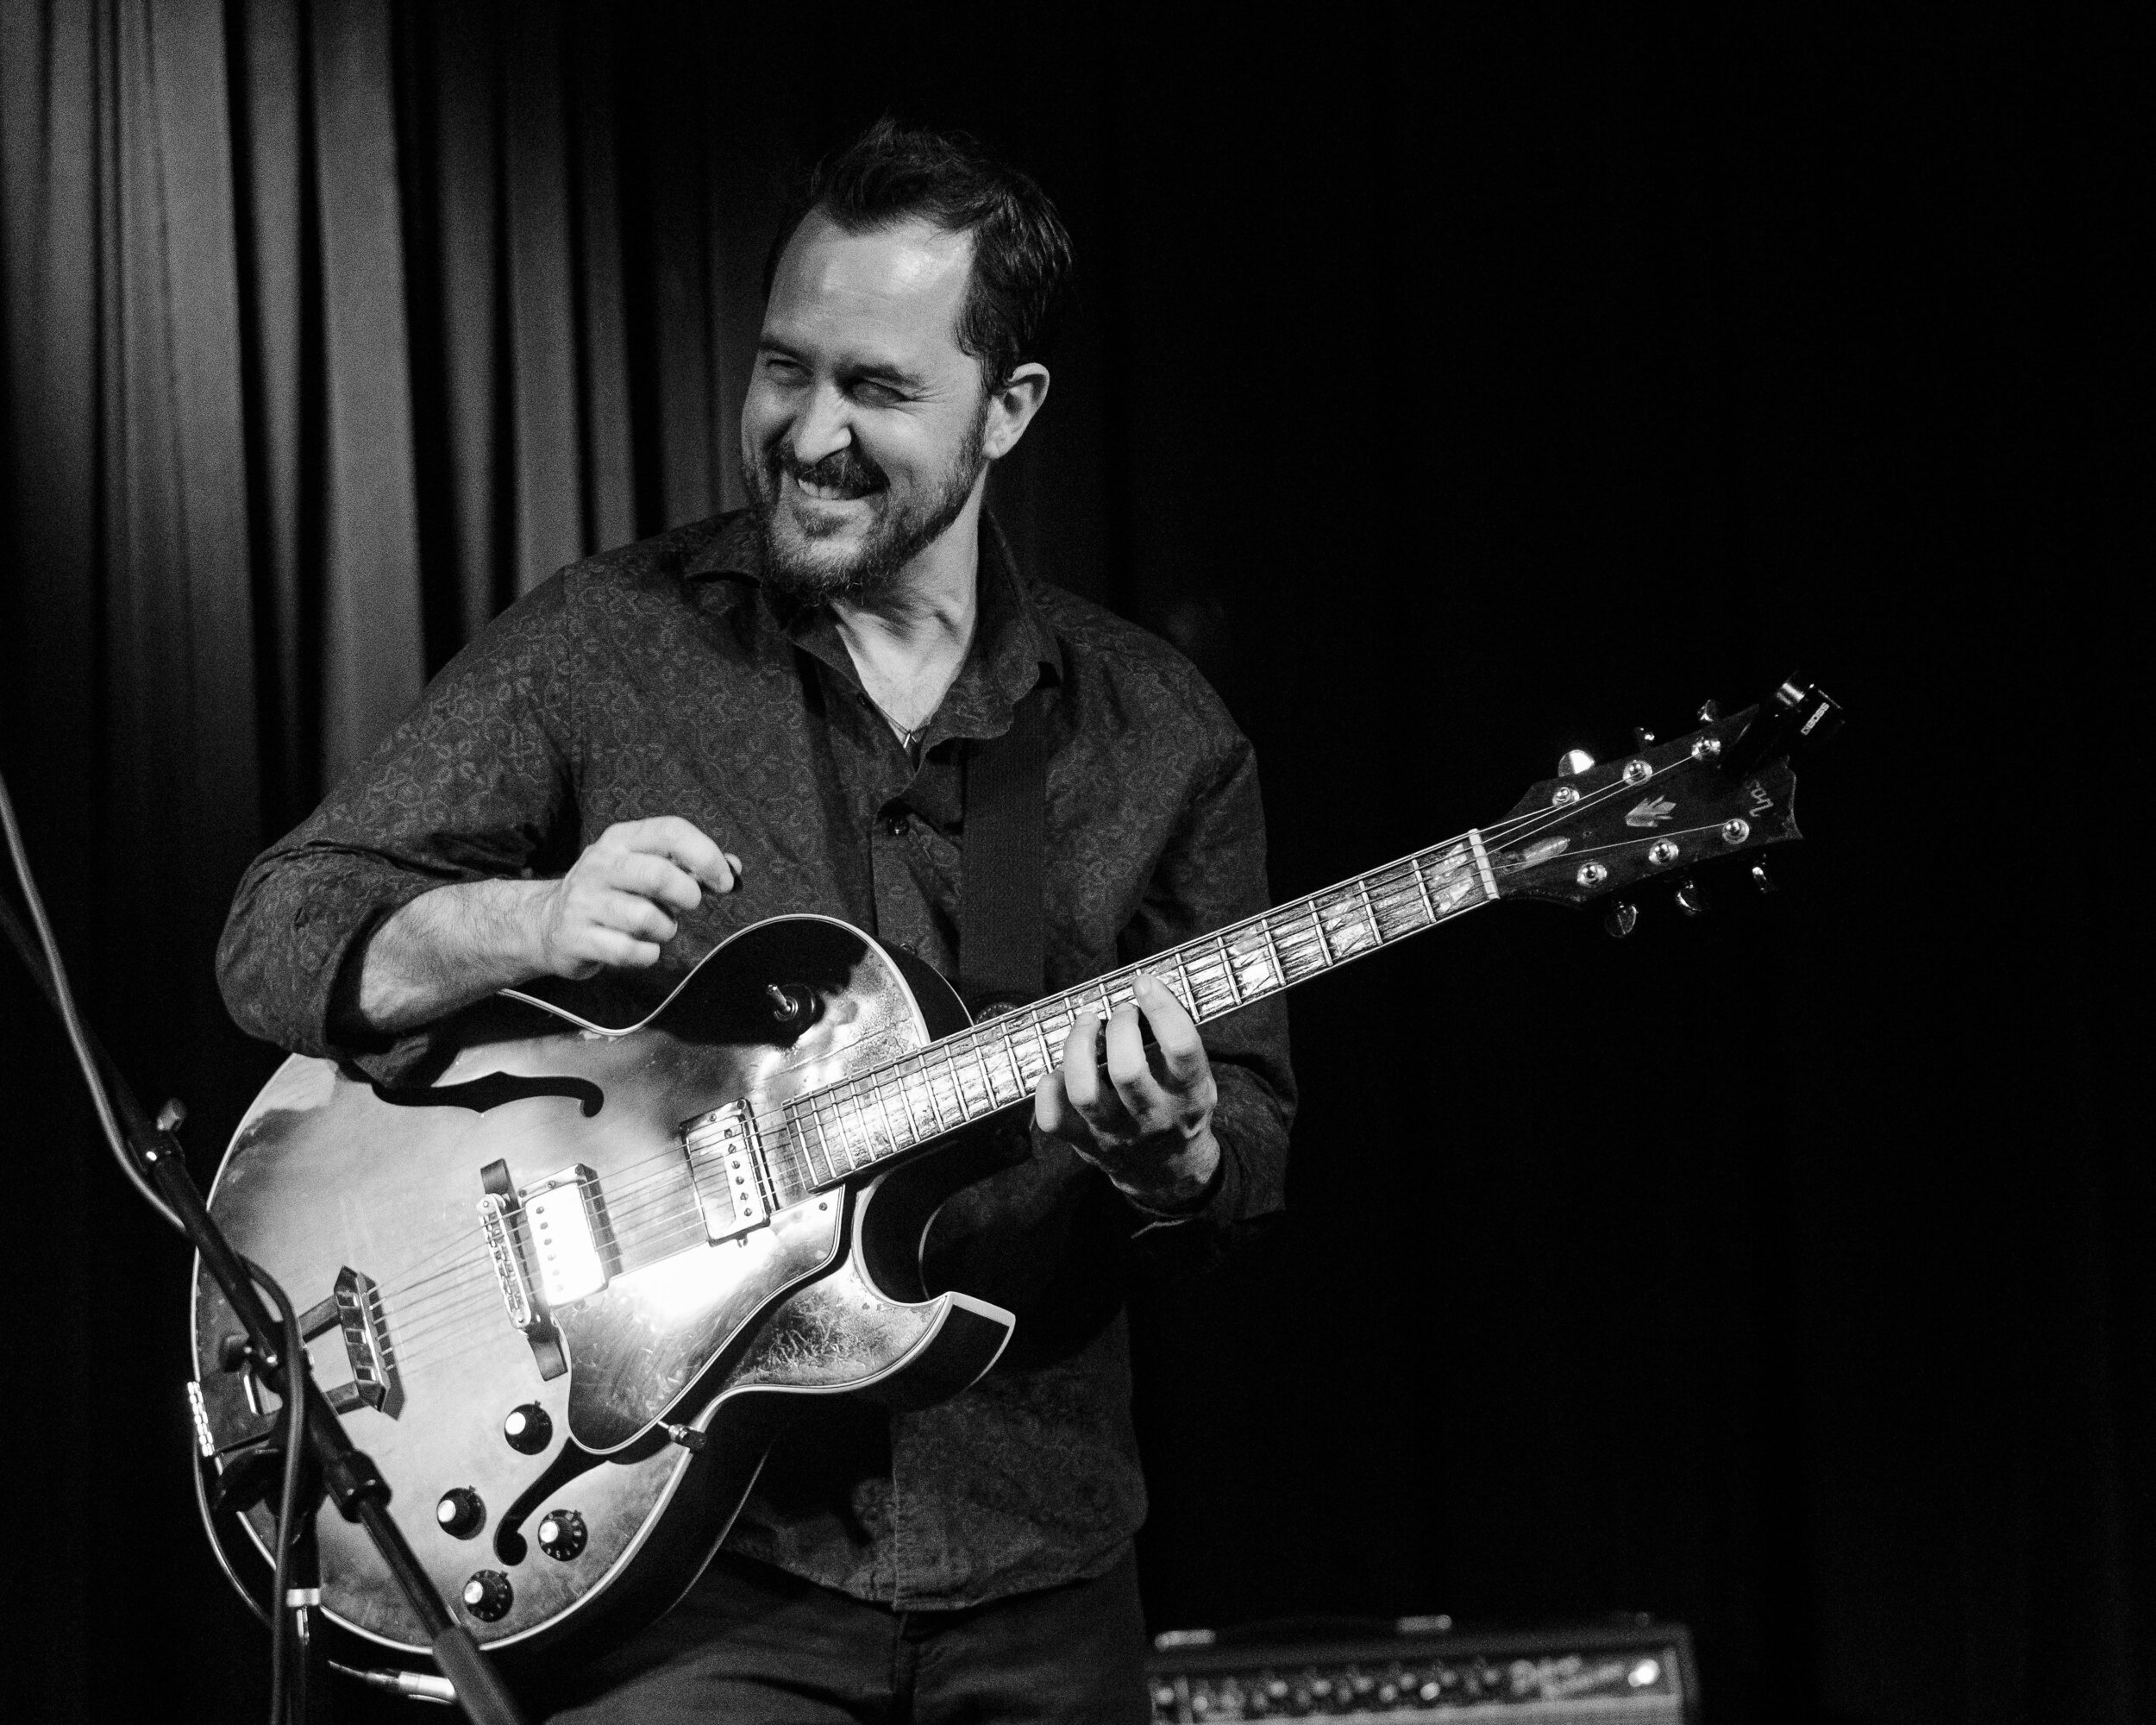 Jonathan Kreisberg on guitar at The Nash Jazz Club with the Jonathan Kreisberg Quartet.